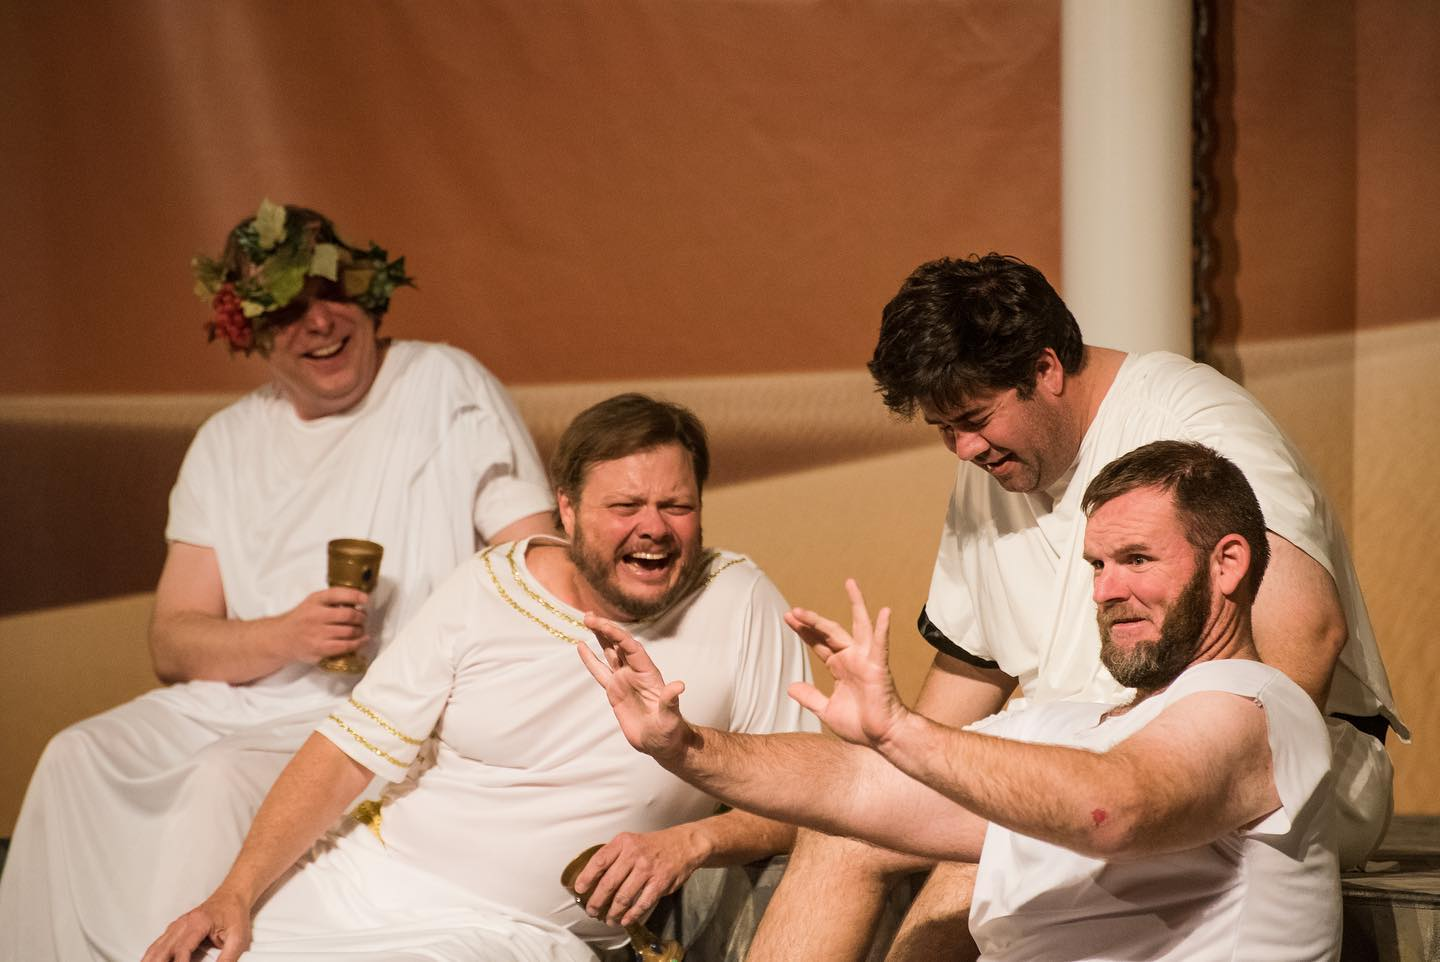 Men in white garments are seen laughing and chatting close together